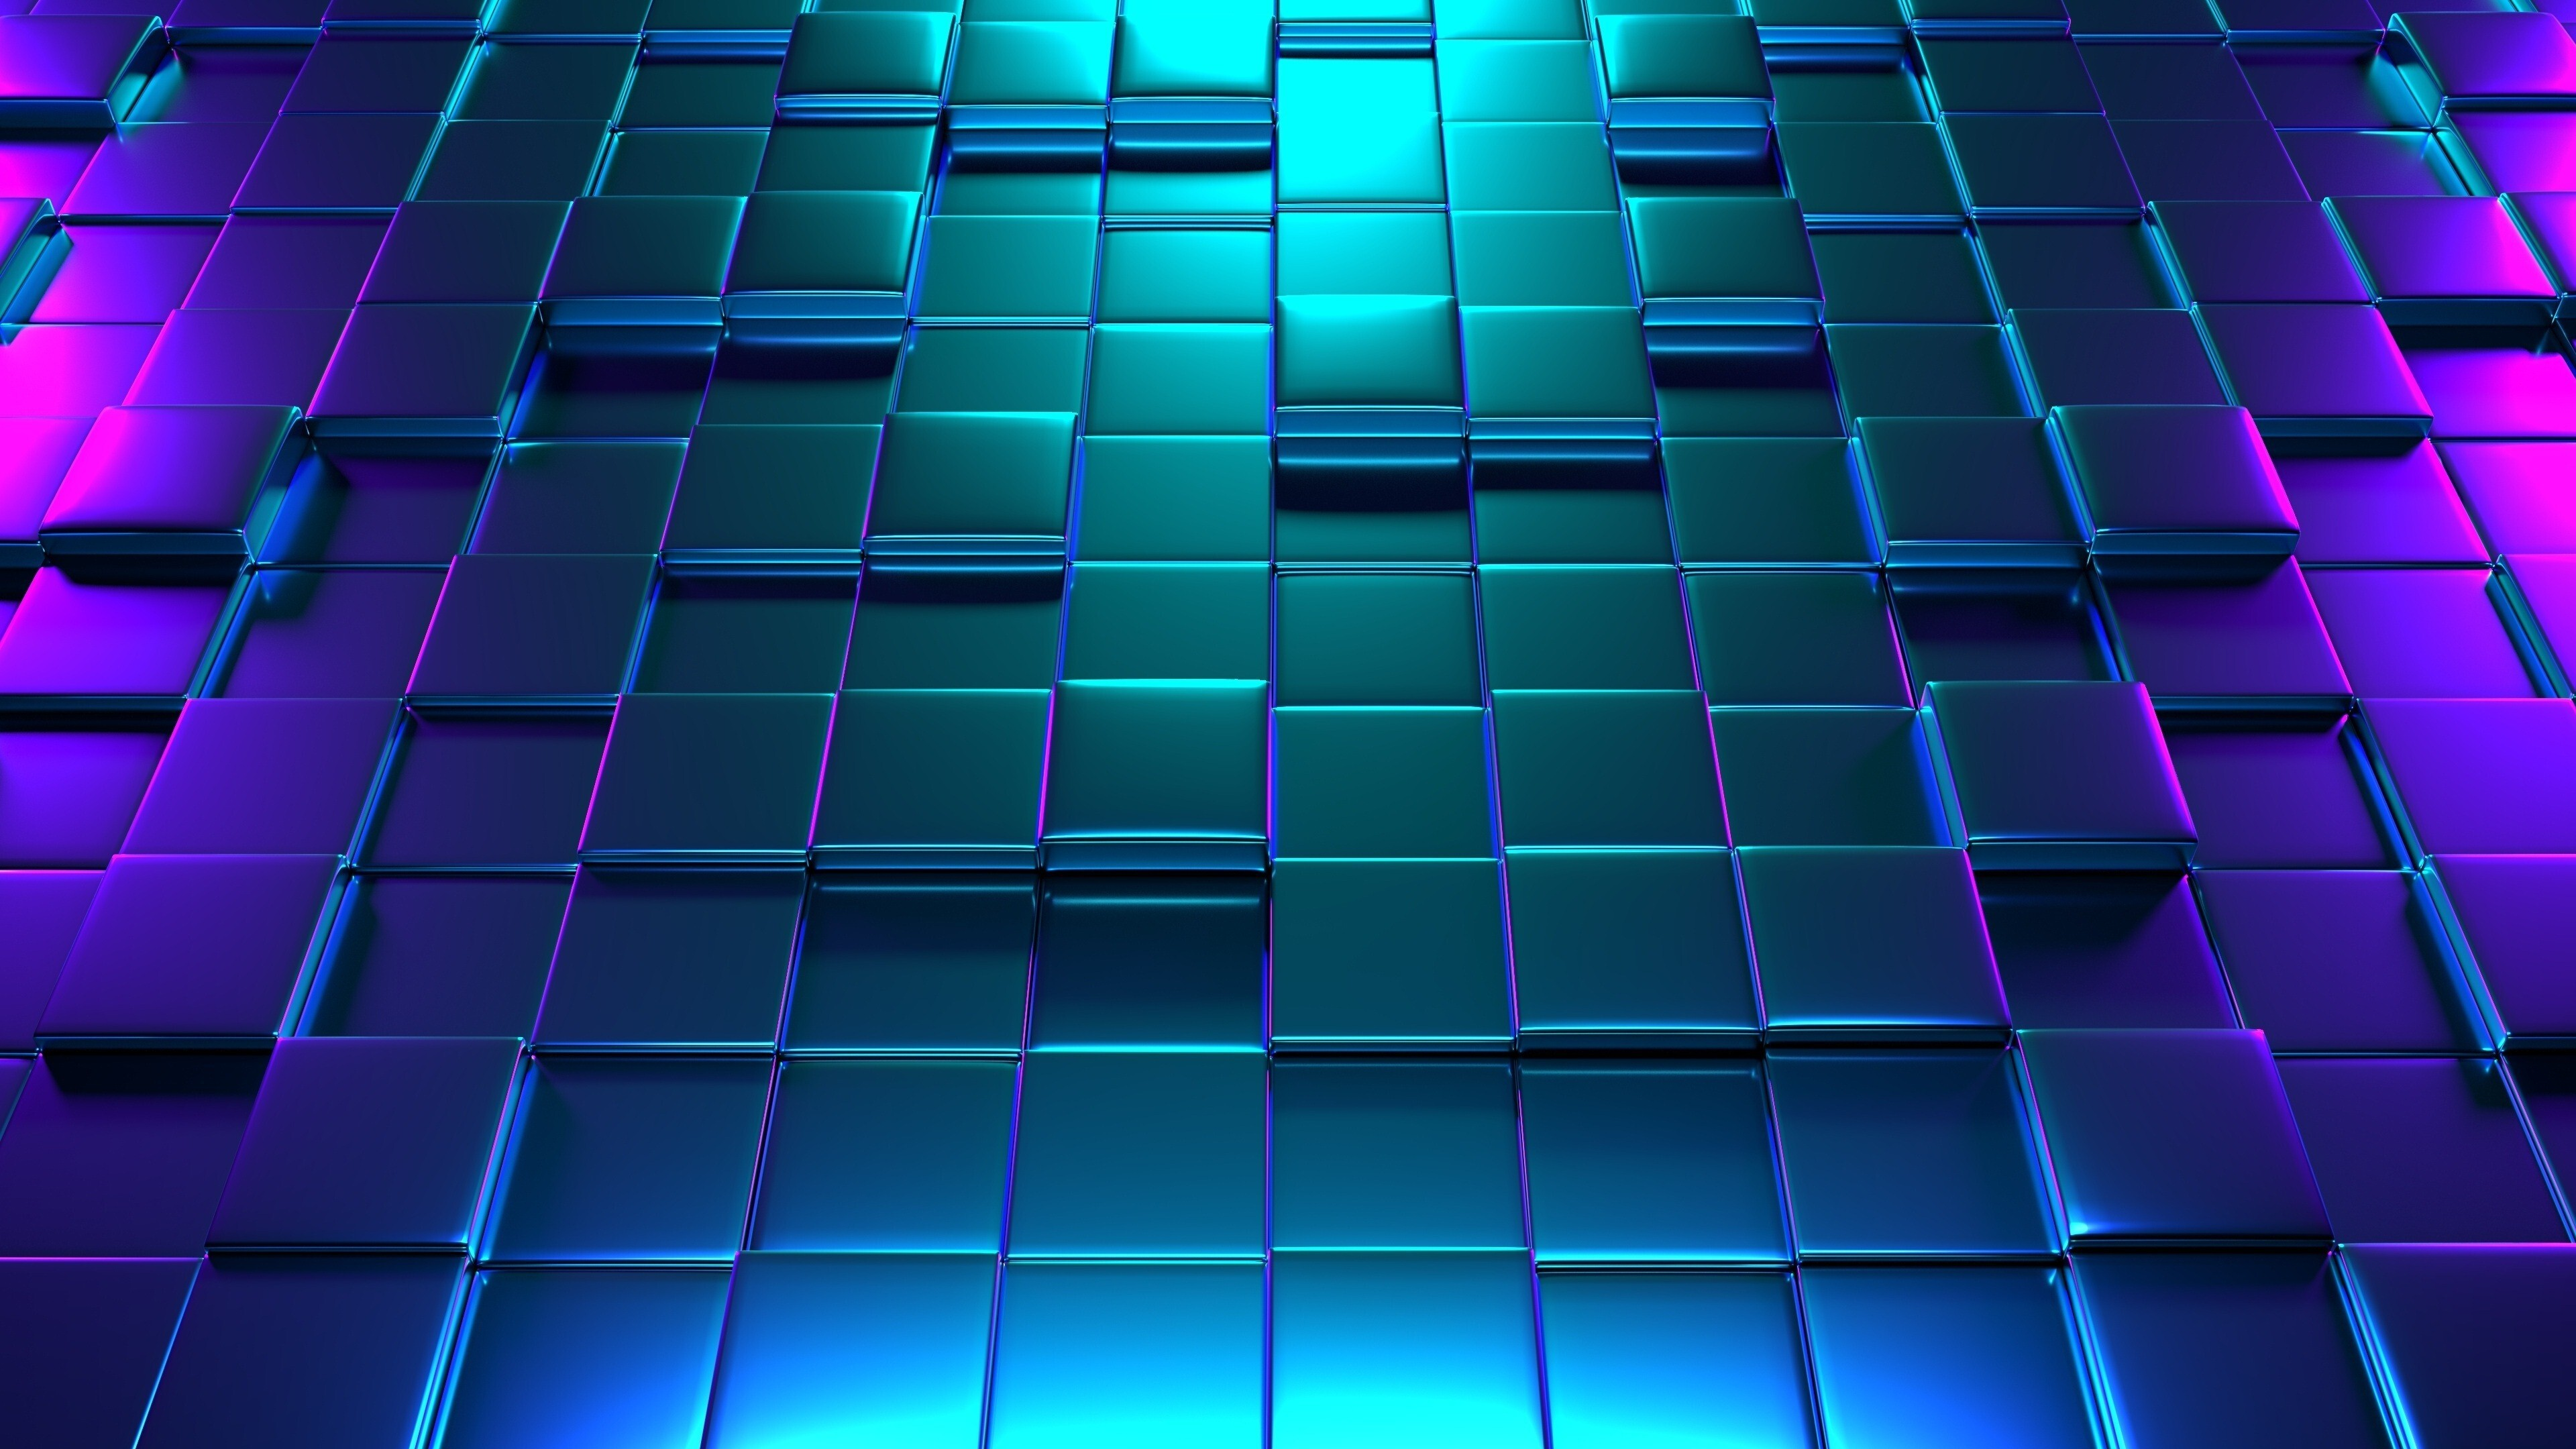 4k Wallpaper Of 3d Colorful Cubes Hd Wallpapers